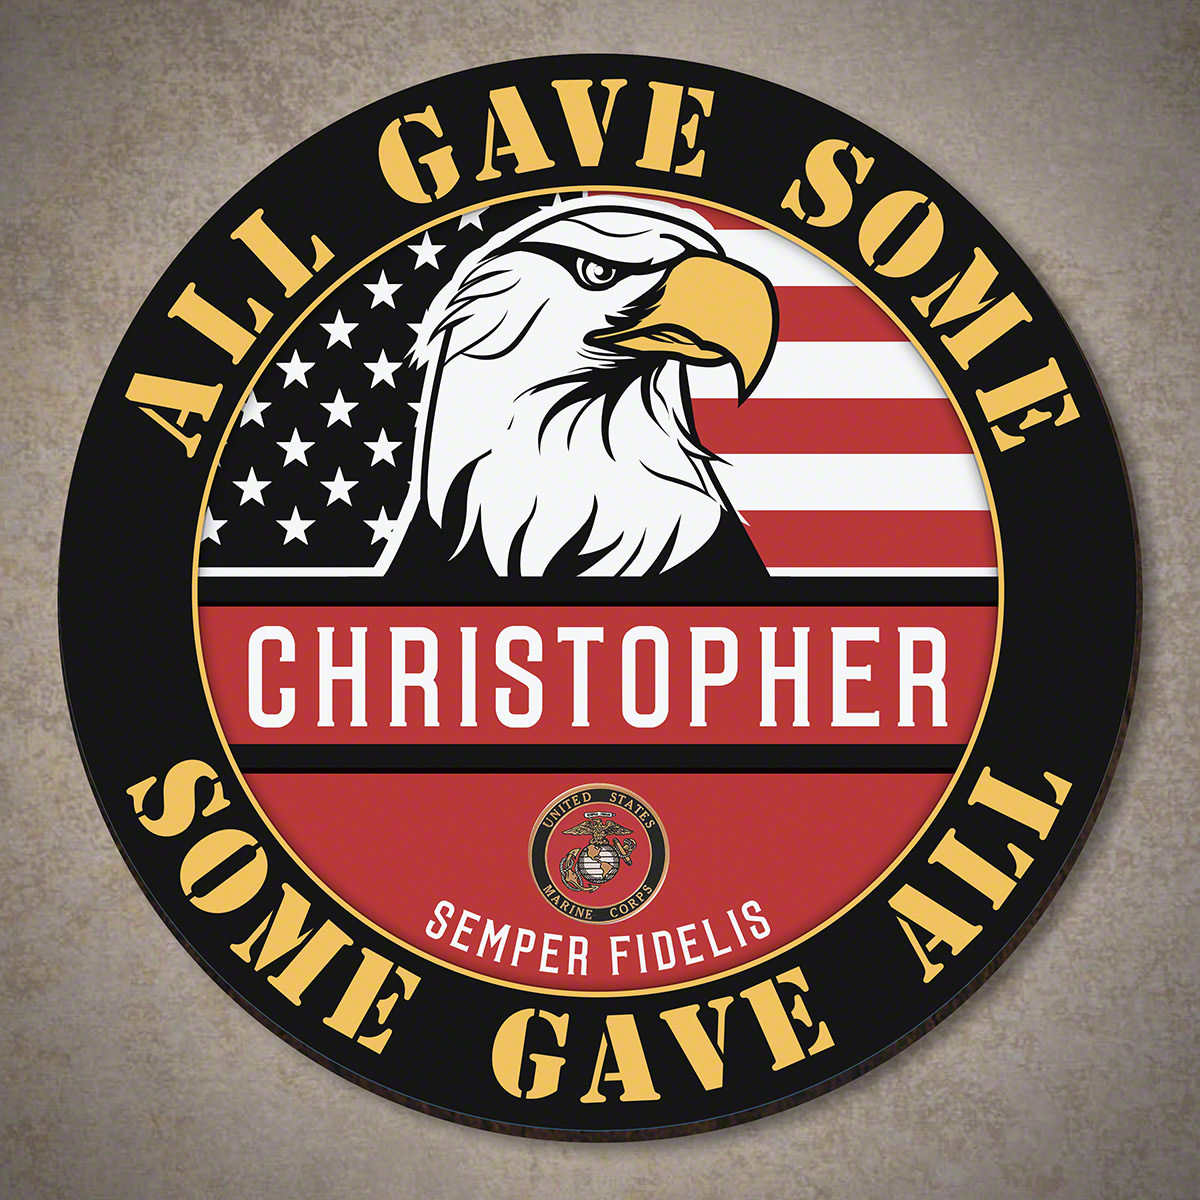 All Gave Some Some Gave All Personalized Sign - US Marine Corps Gift